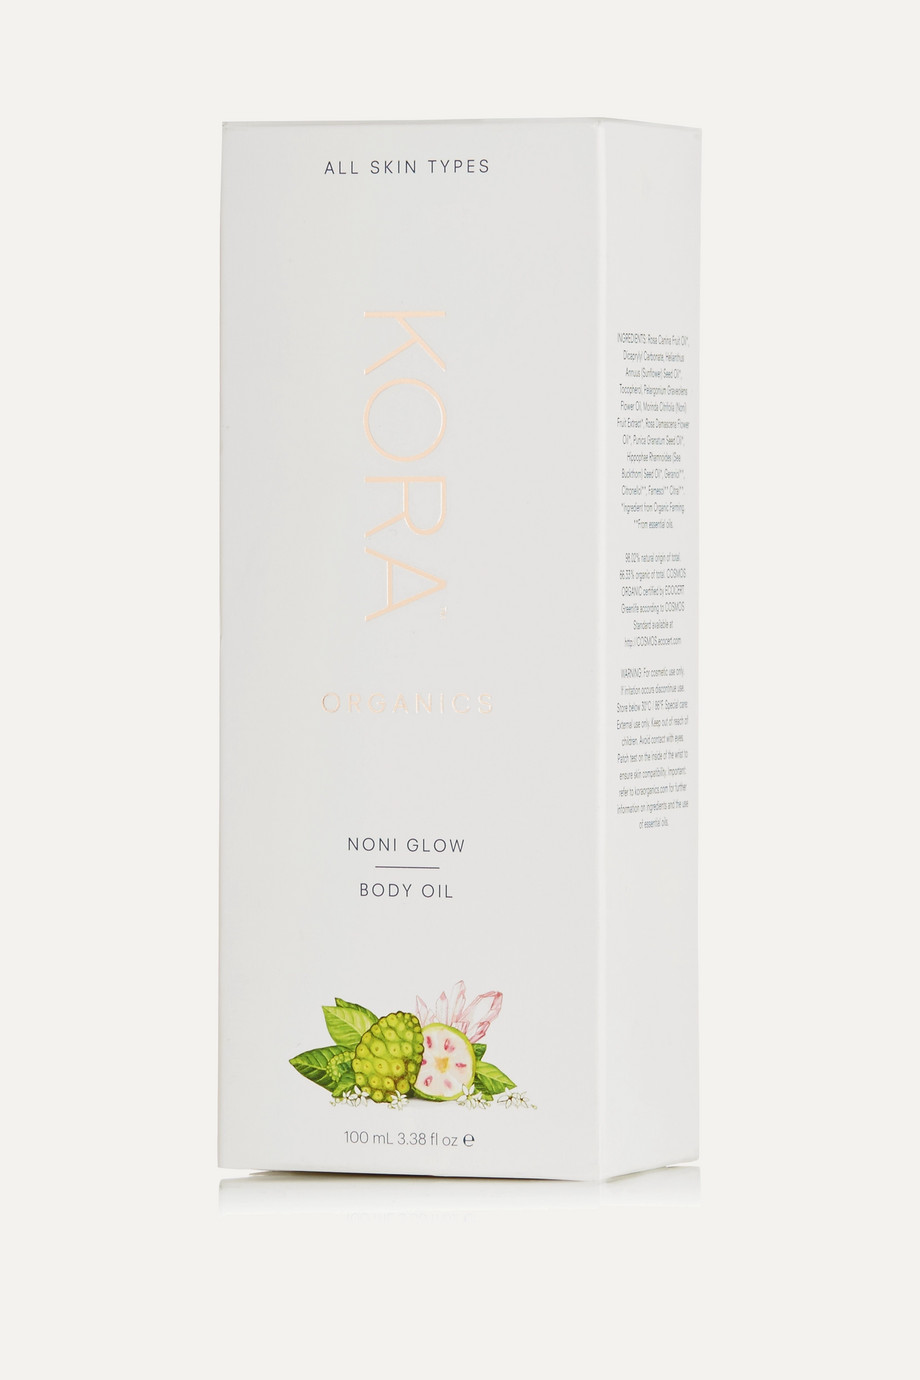 KORA Organics Noni Glow Body Oil, 100ml